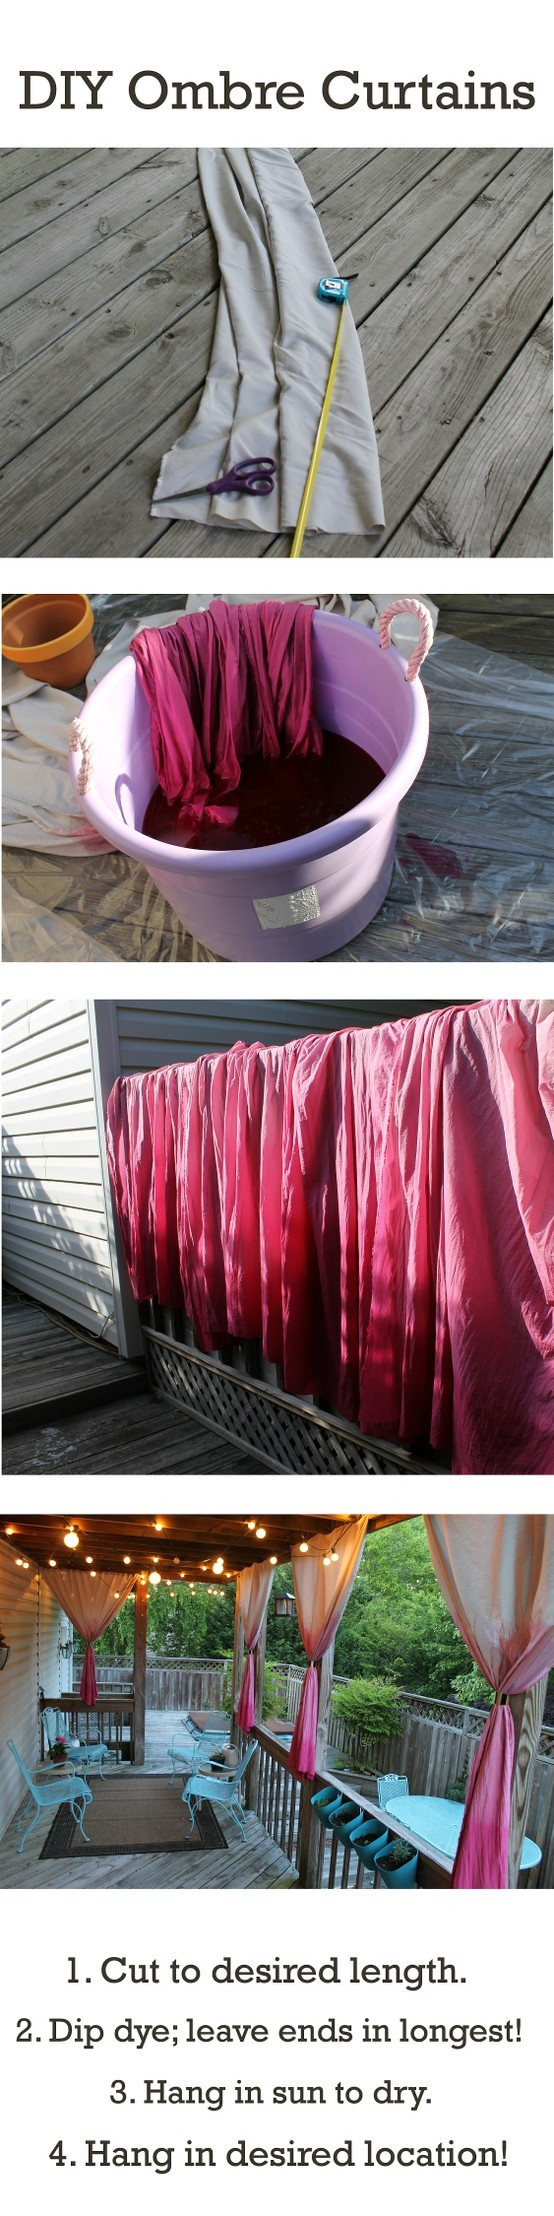 I like the idea of the curtains under the deck